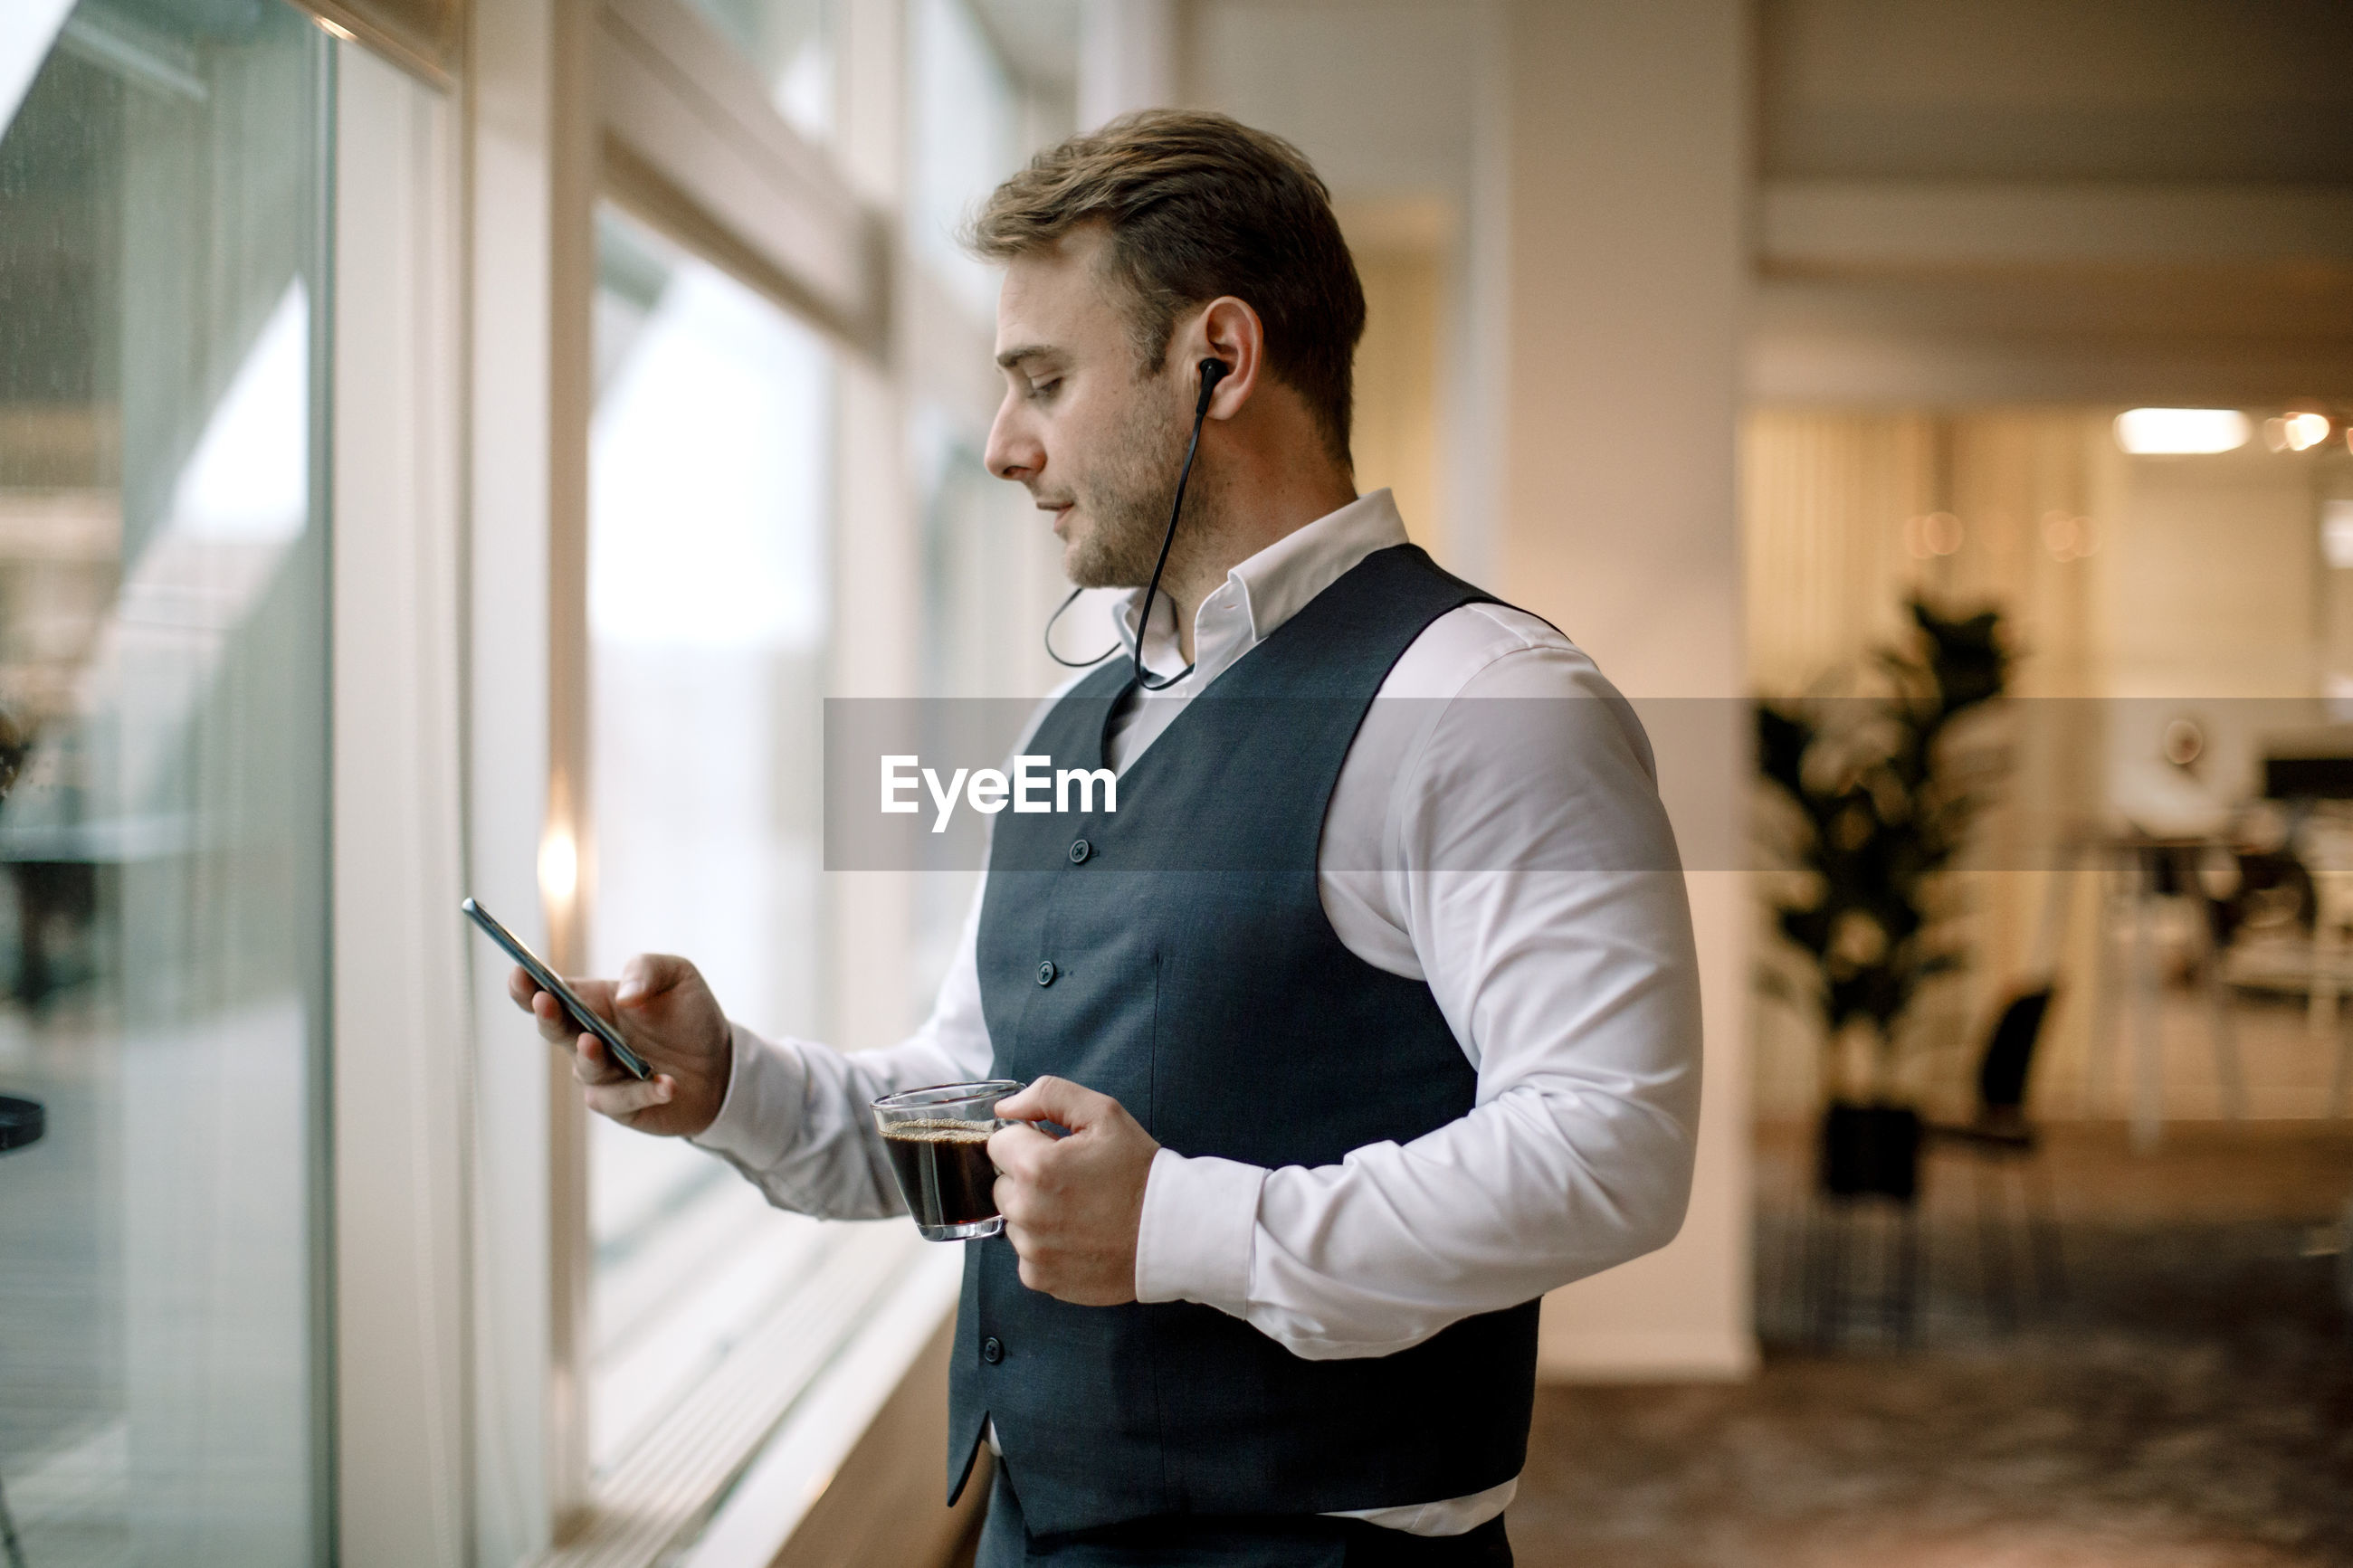 SIDE VIEW OF A YOUNG MAN USING PHONE